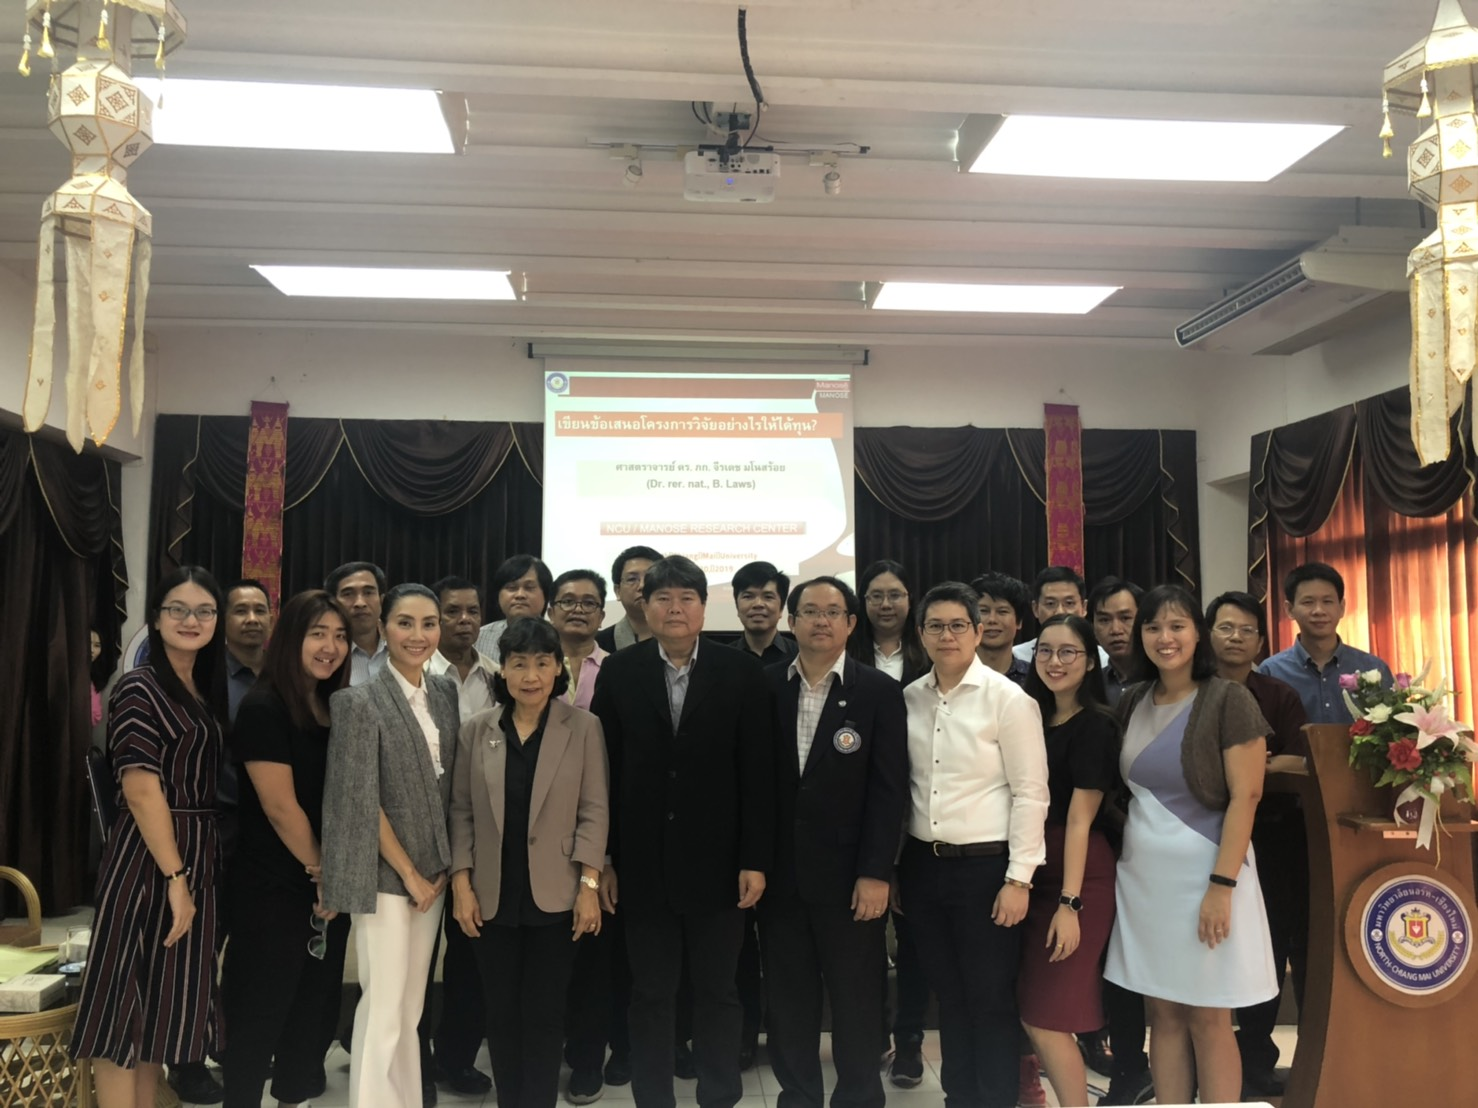 """The Executive Board of Manose Health and Beauty Research Center were speakers at the training program """"Writing a Research Proposal and a Research Manuscript"""" at North-Chiang Mai University, Thailand"""